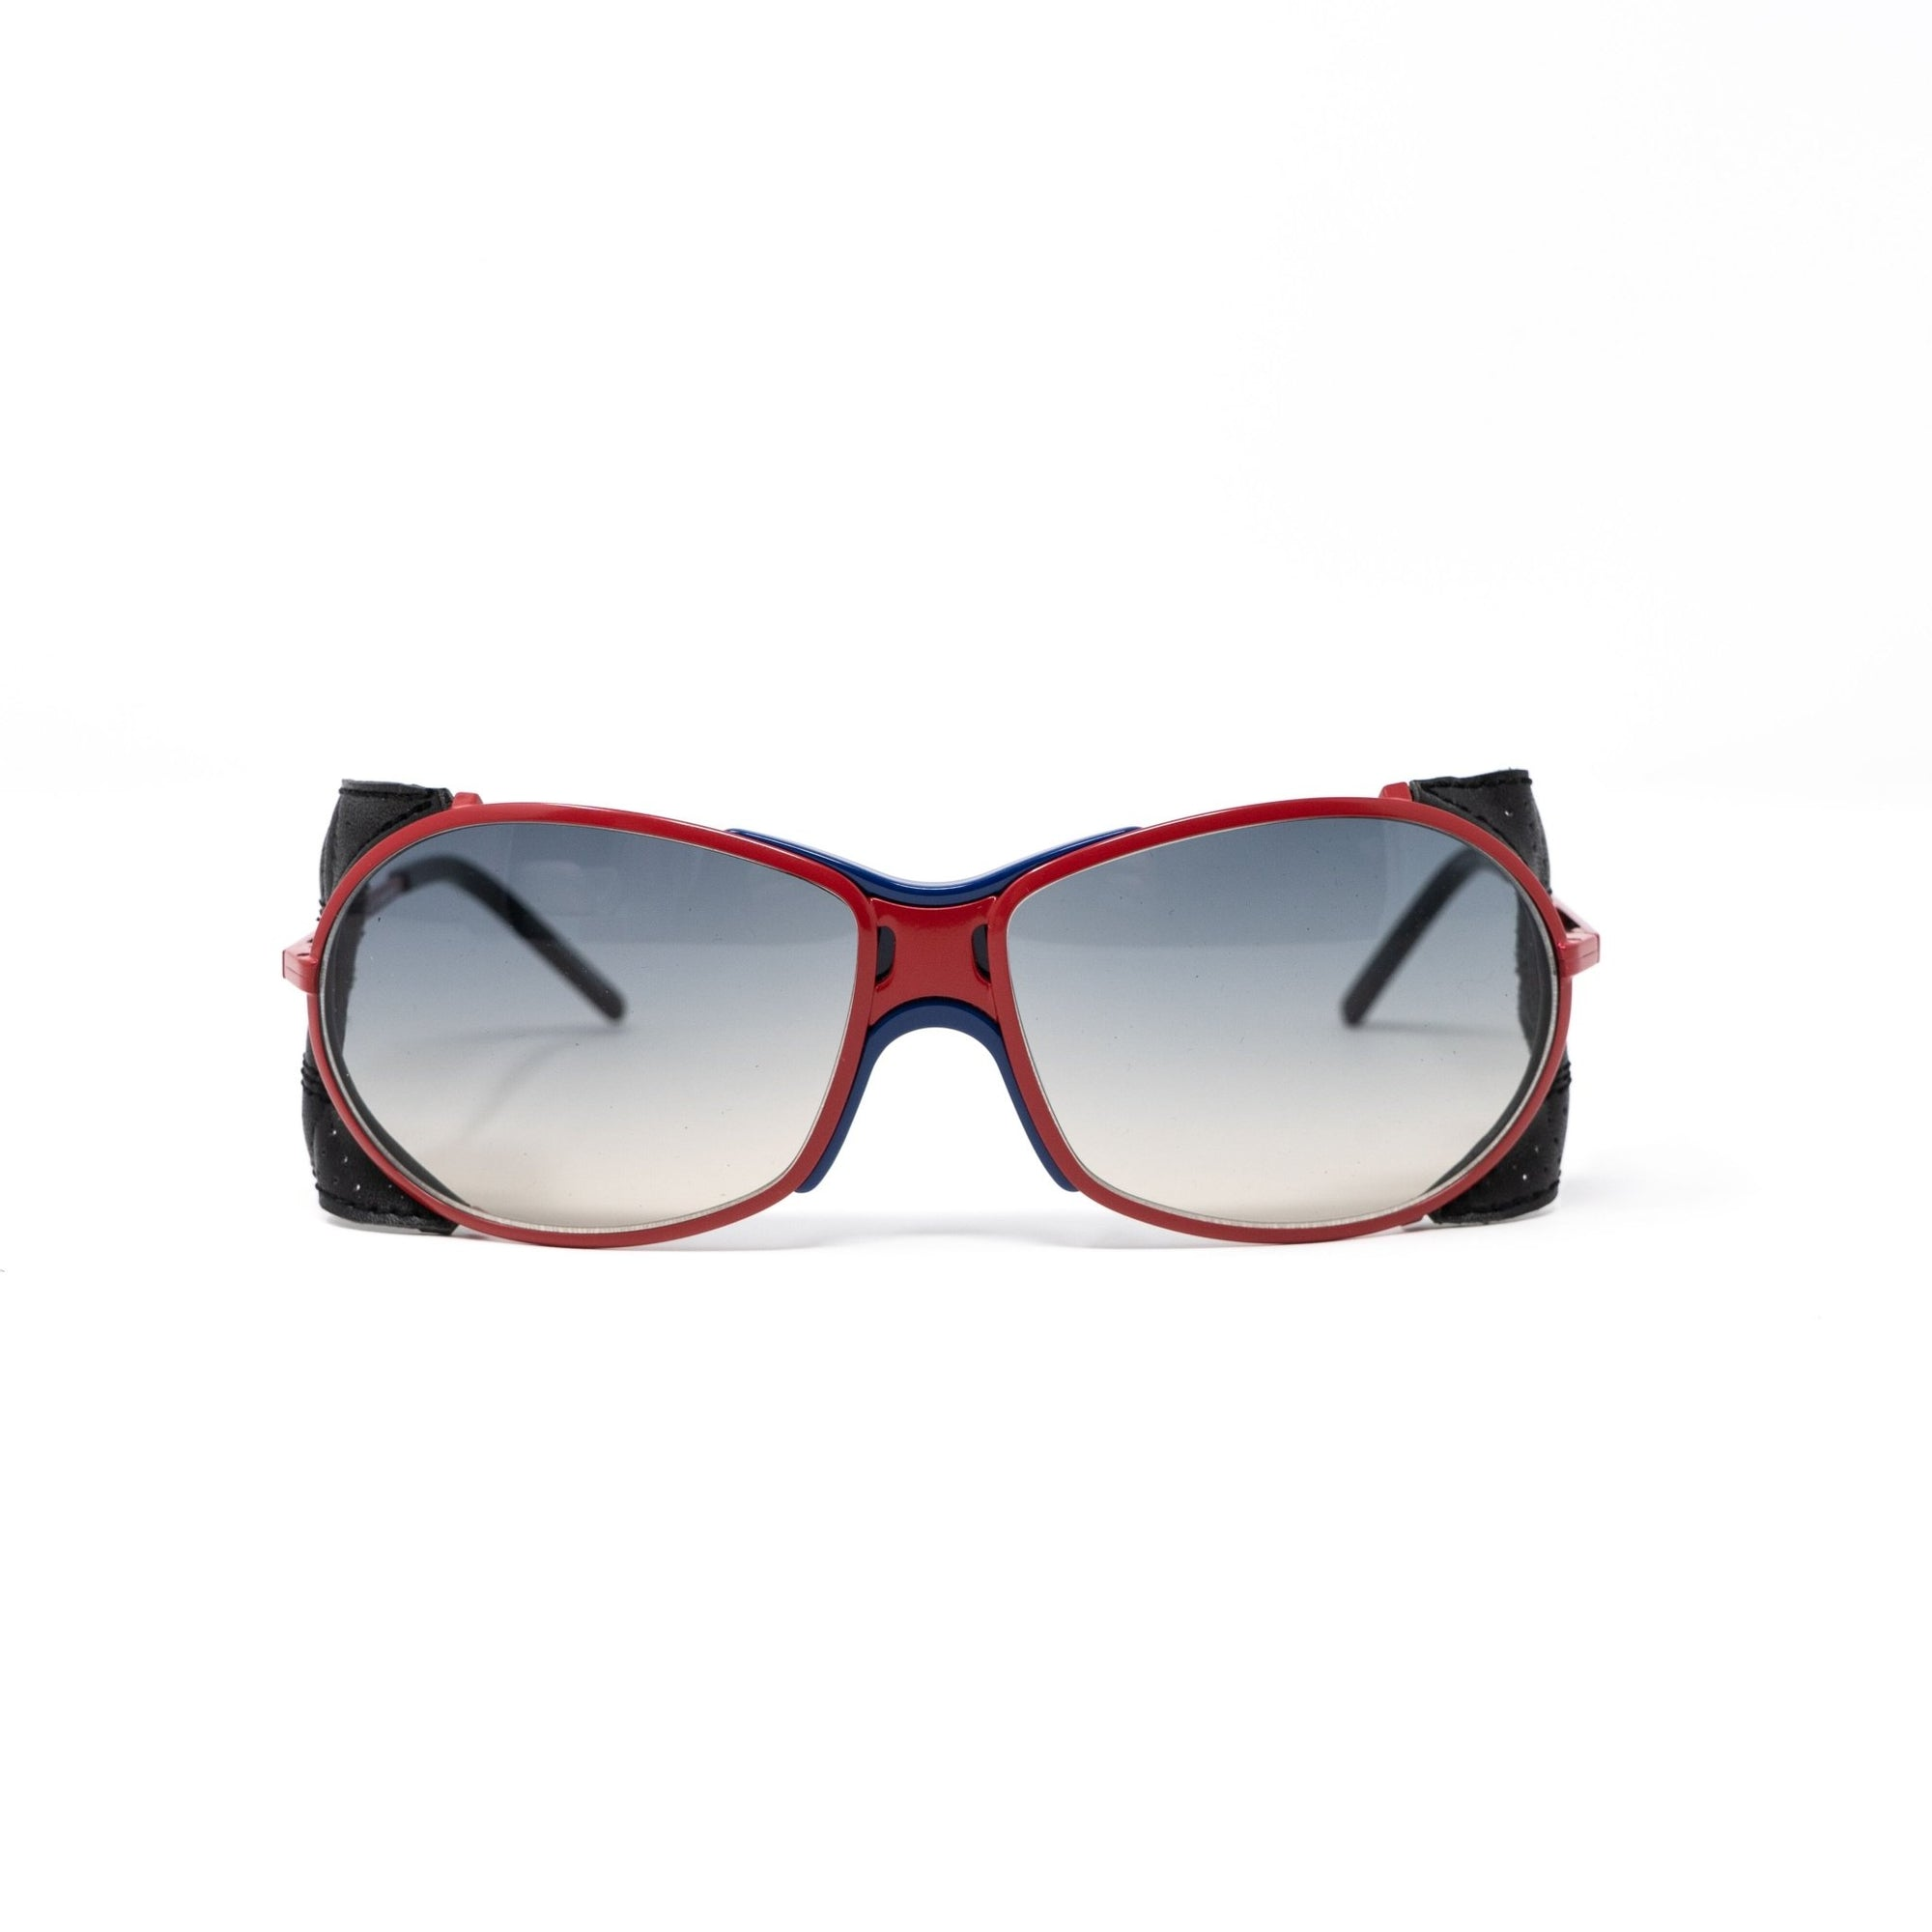 Raf Simons Sunglasses Wrap Red Leather Trim Sports and Silver Mirror Lenses - 8RAF3ARED - Watches & Crystals